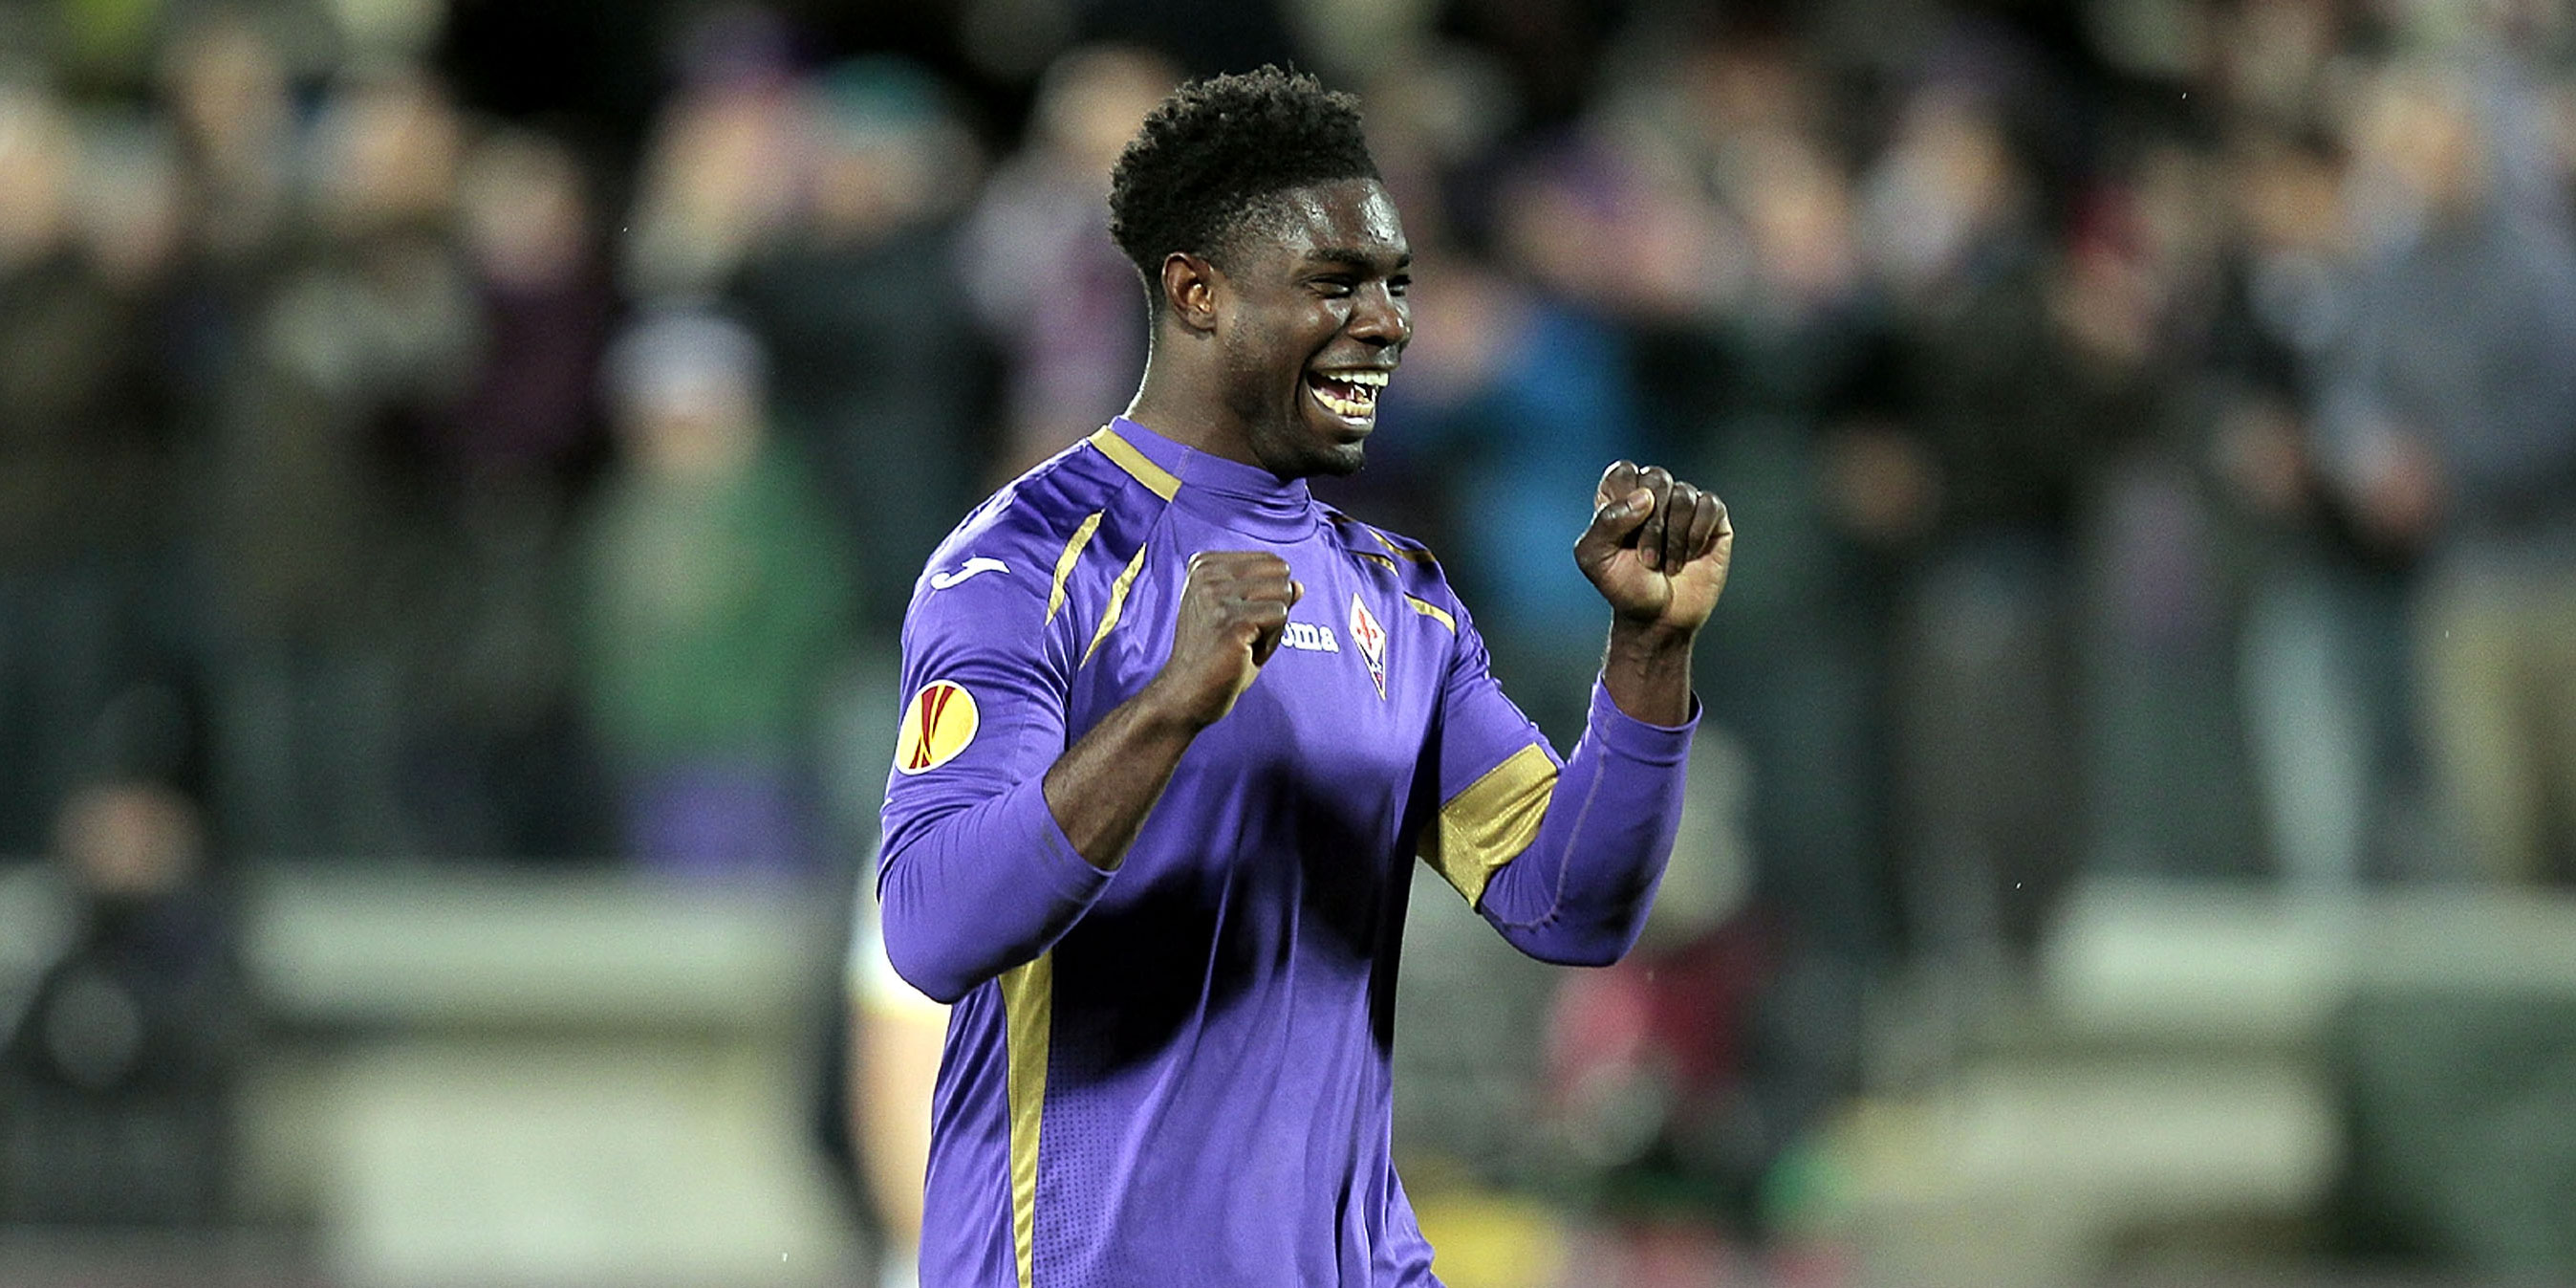 Micah Richards in action for Fiorentina